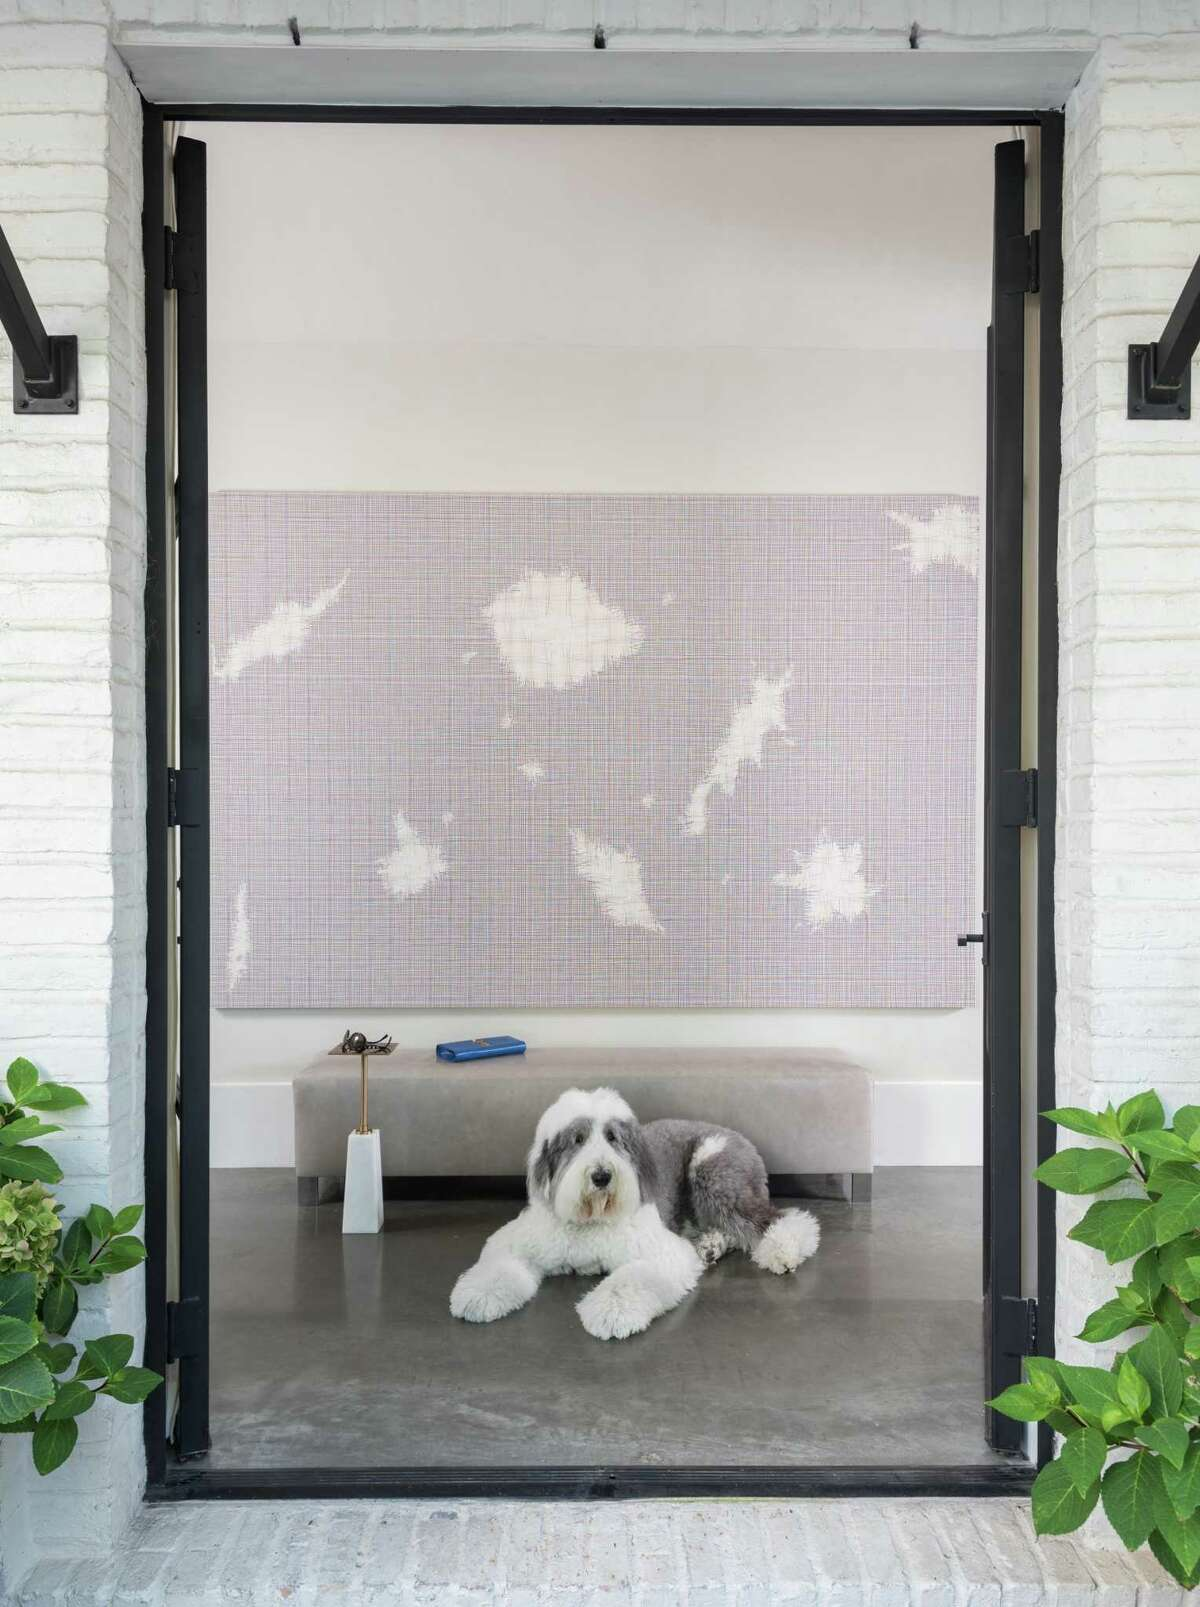 Rocky, the family's old English sheepdog, greets guests in the foyer.